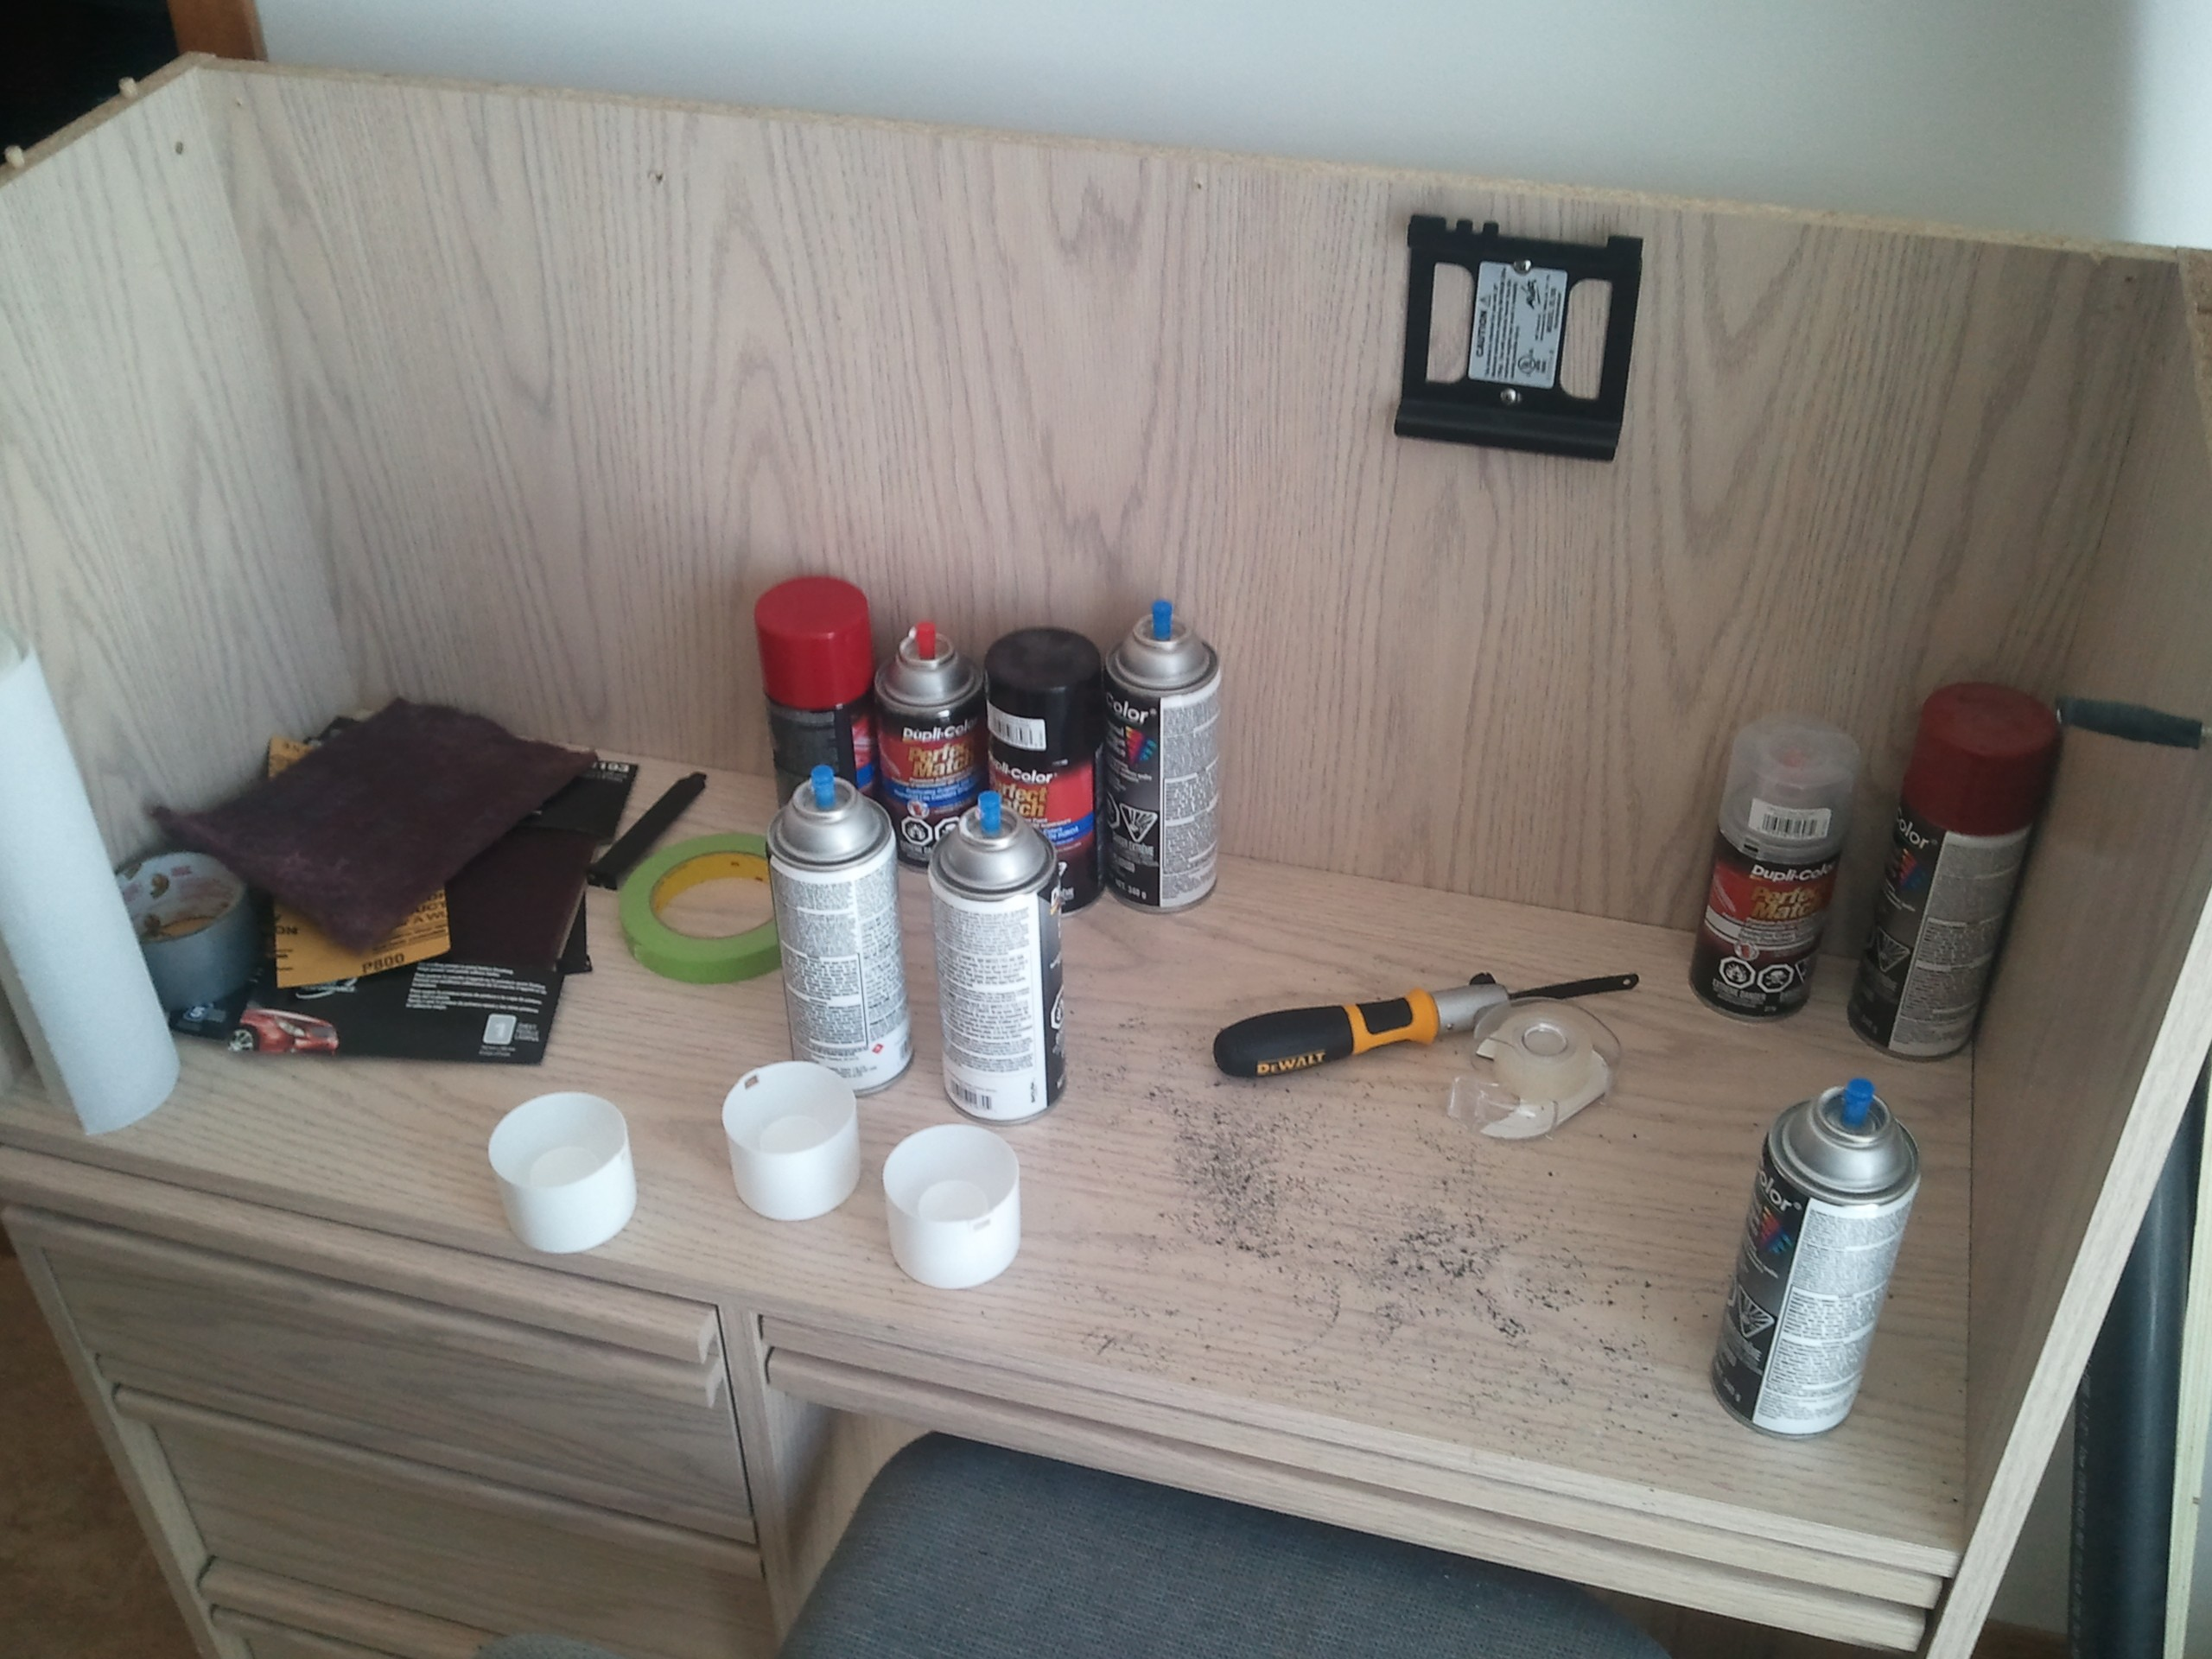 fd17fd01_30-TheWorkbench.jpeg